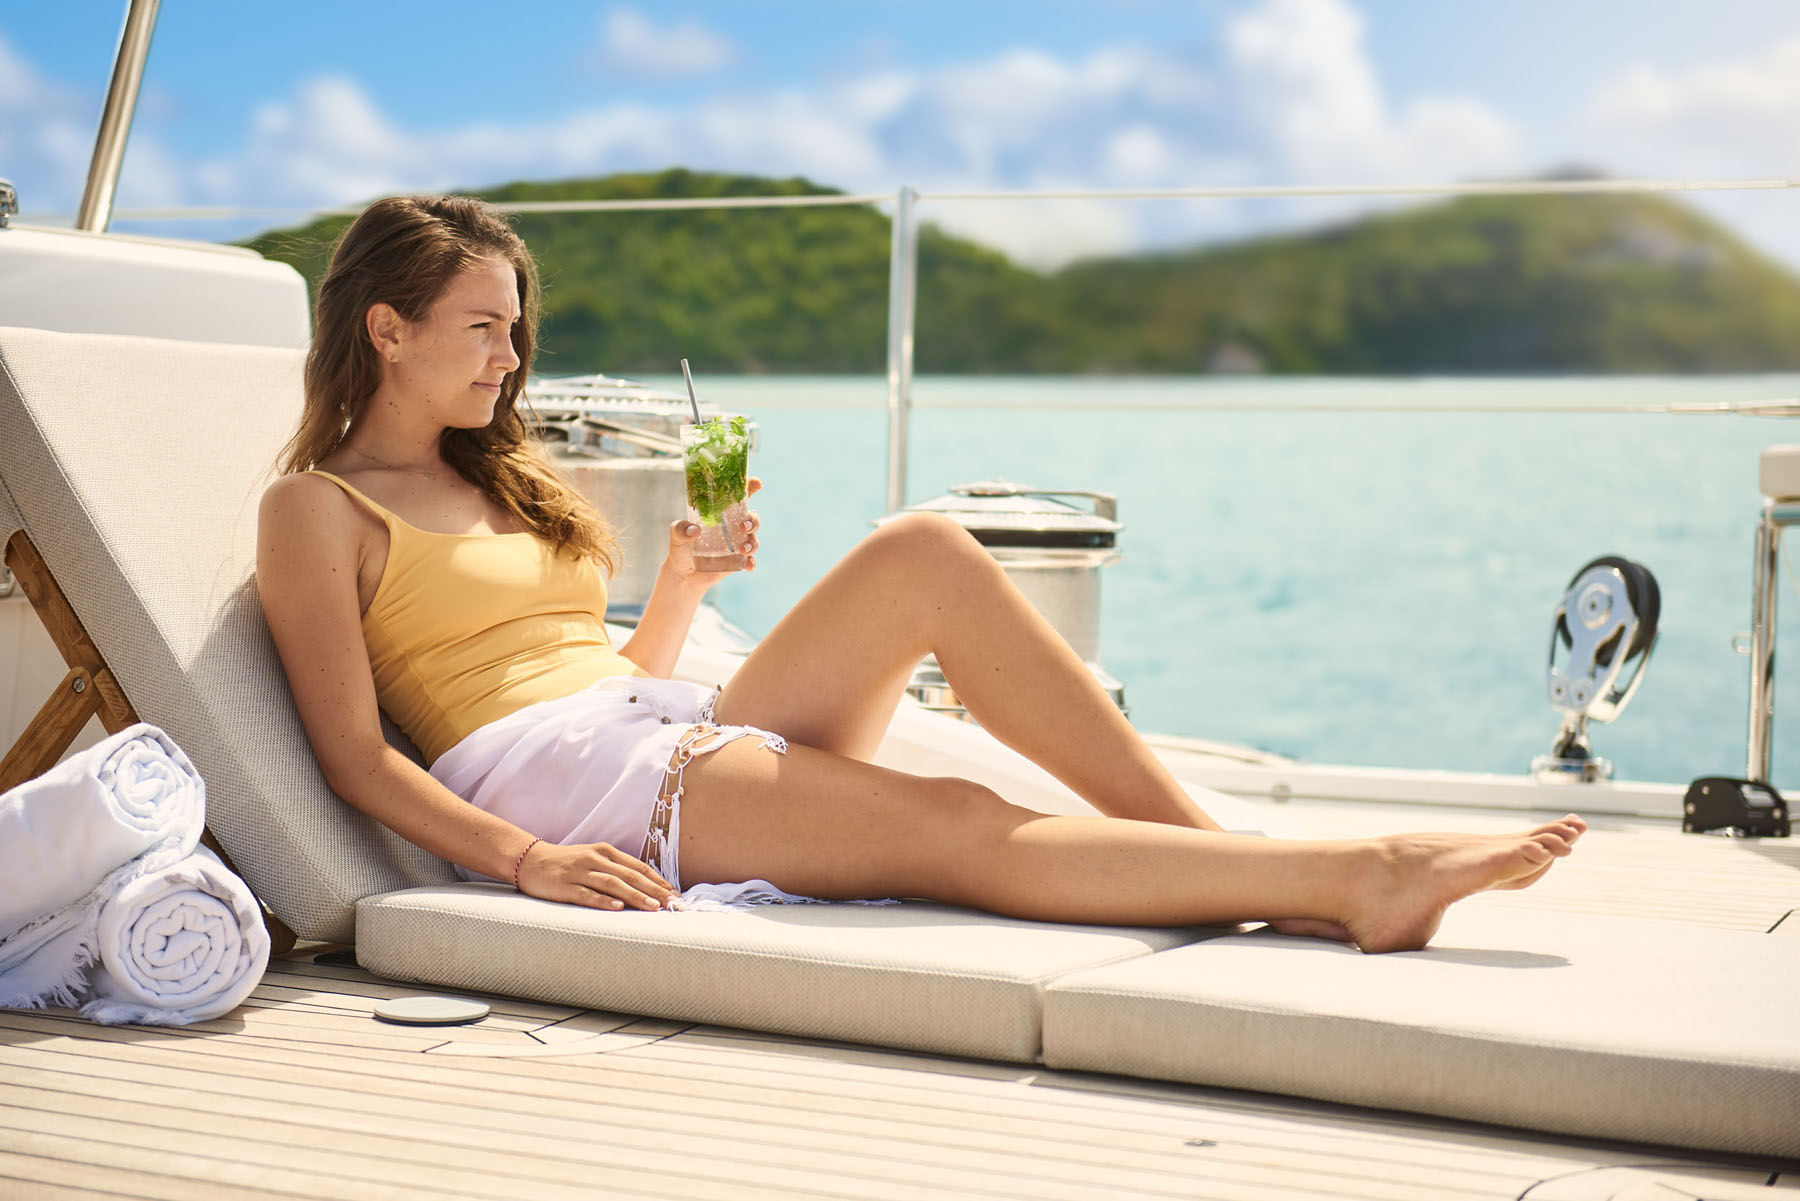 Woman relaxing on the deck of a super yacht drinking a cocktail